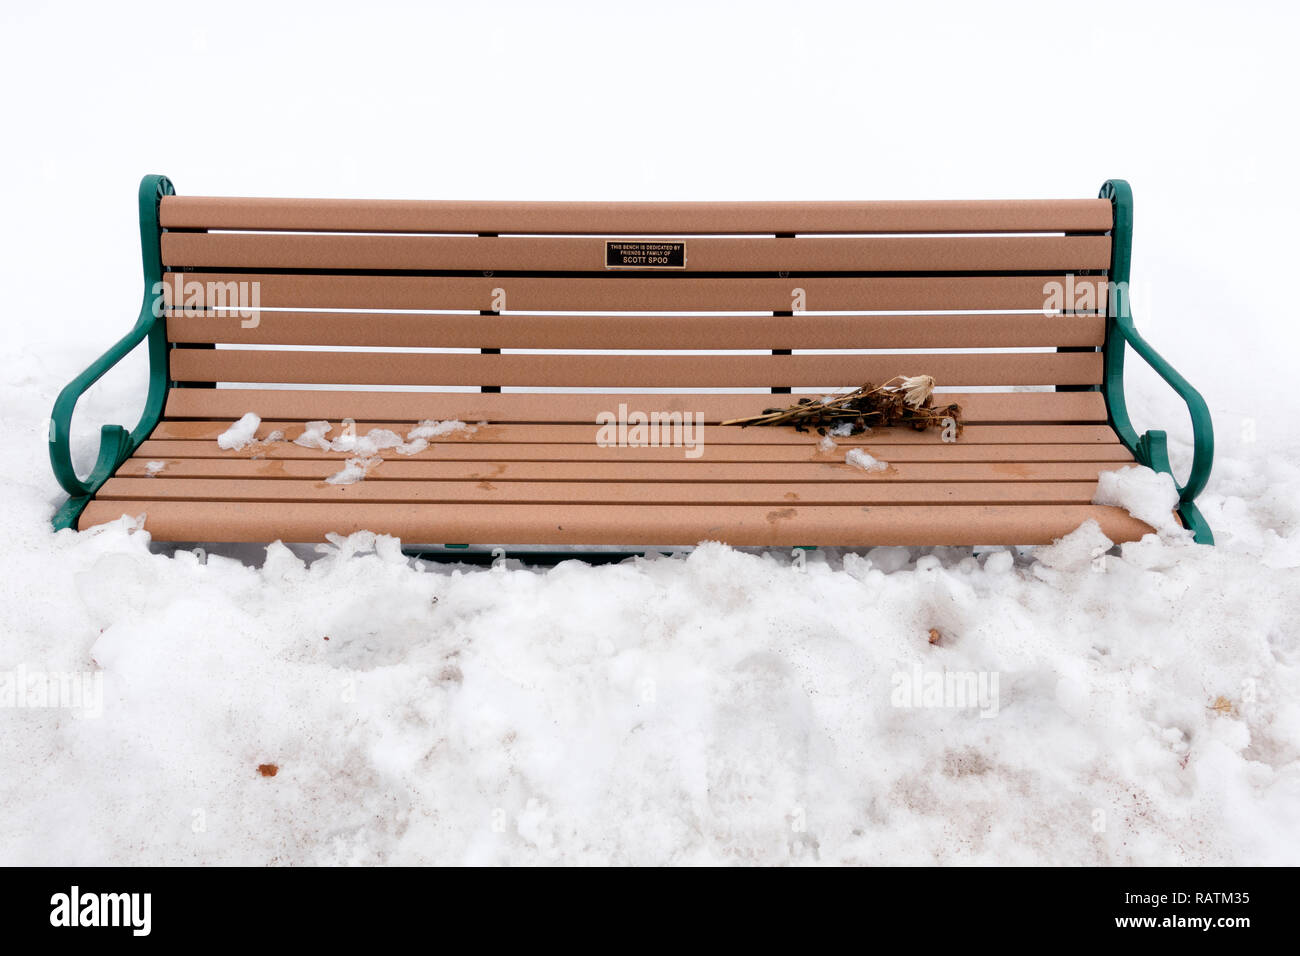 Bench buried in snow in memory of Scott Spoo a runner who was killed by distracted driver on N. Mississippi River Boulevard. St Paul Minnesota MN USA - Stock Image